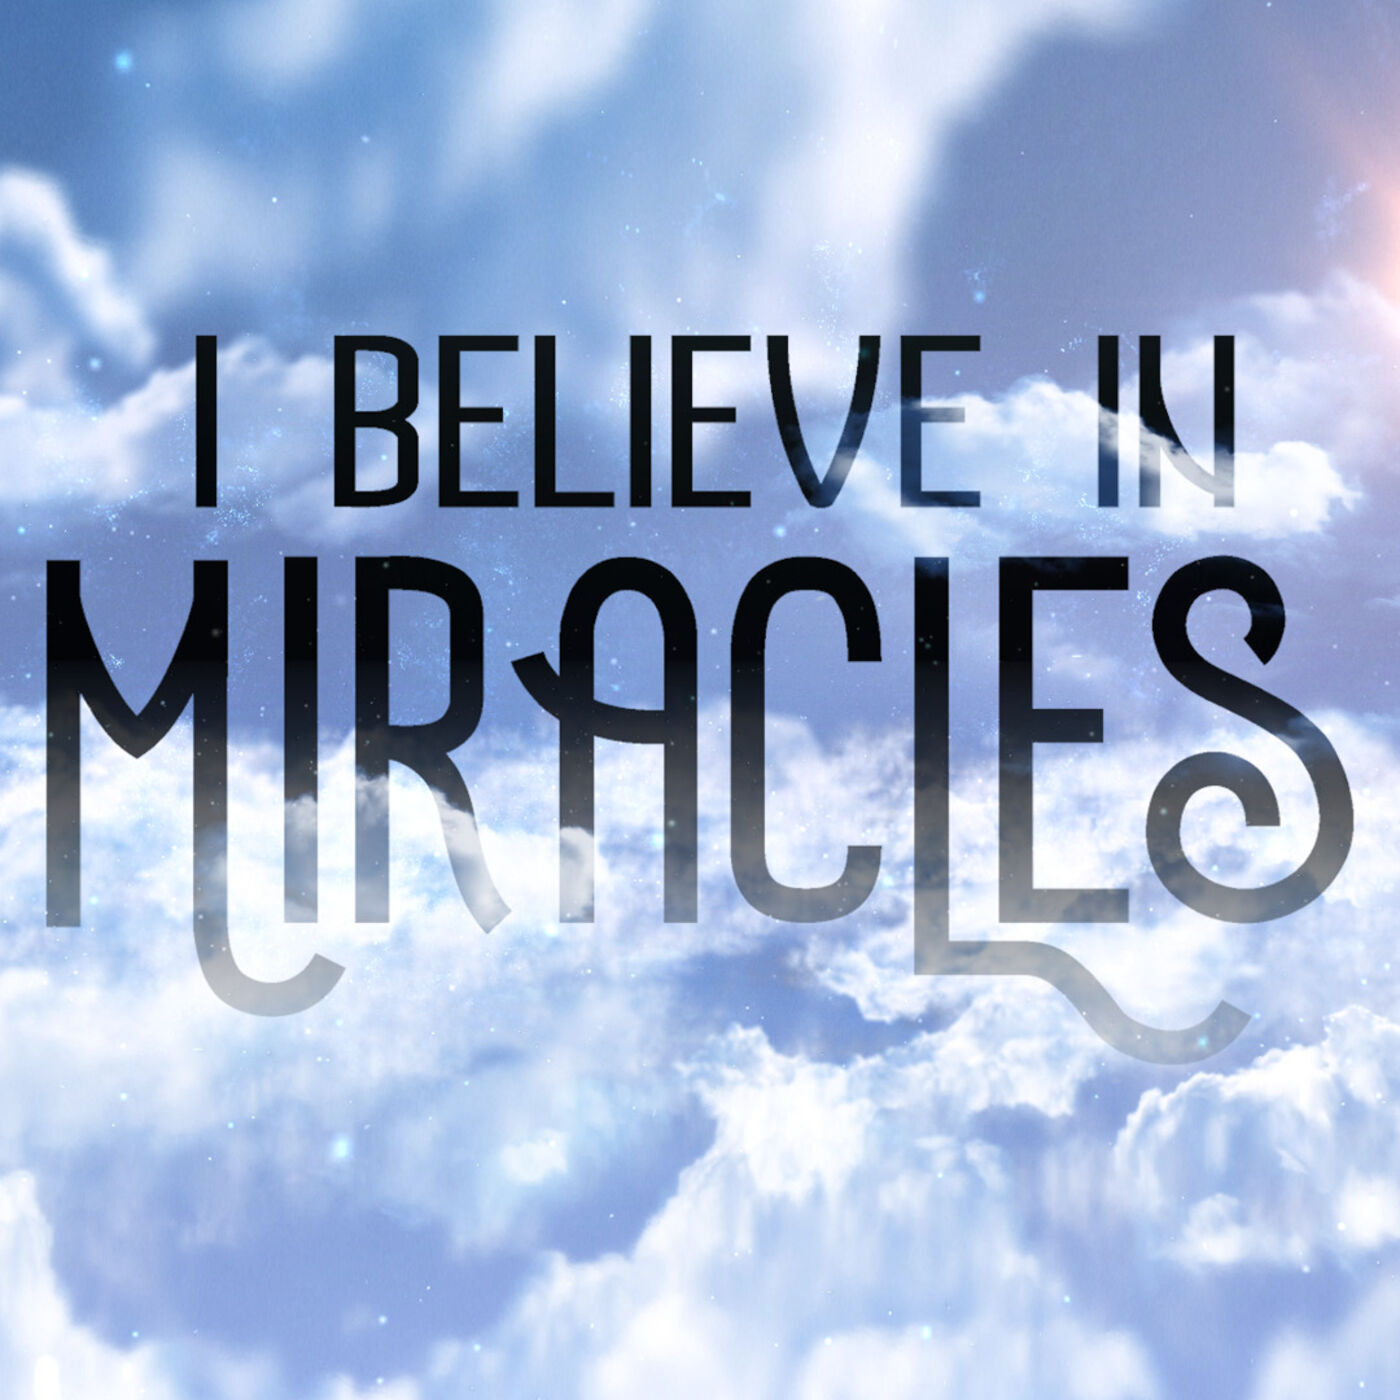 I Believe In Miracles: Part 6 - John the Baptist Prepares the Way